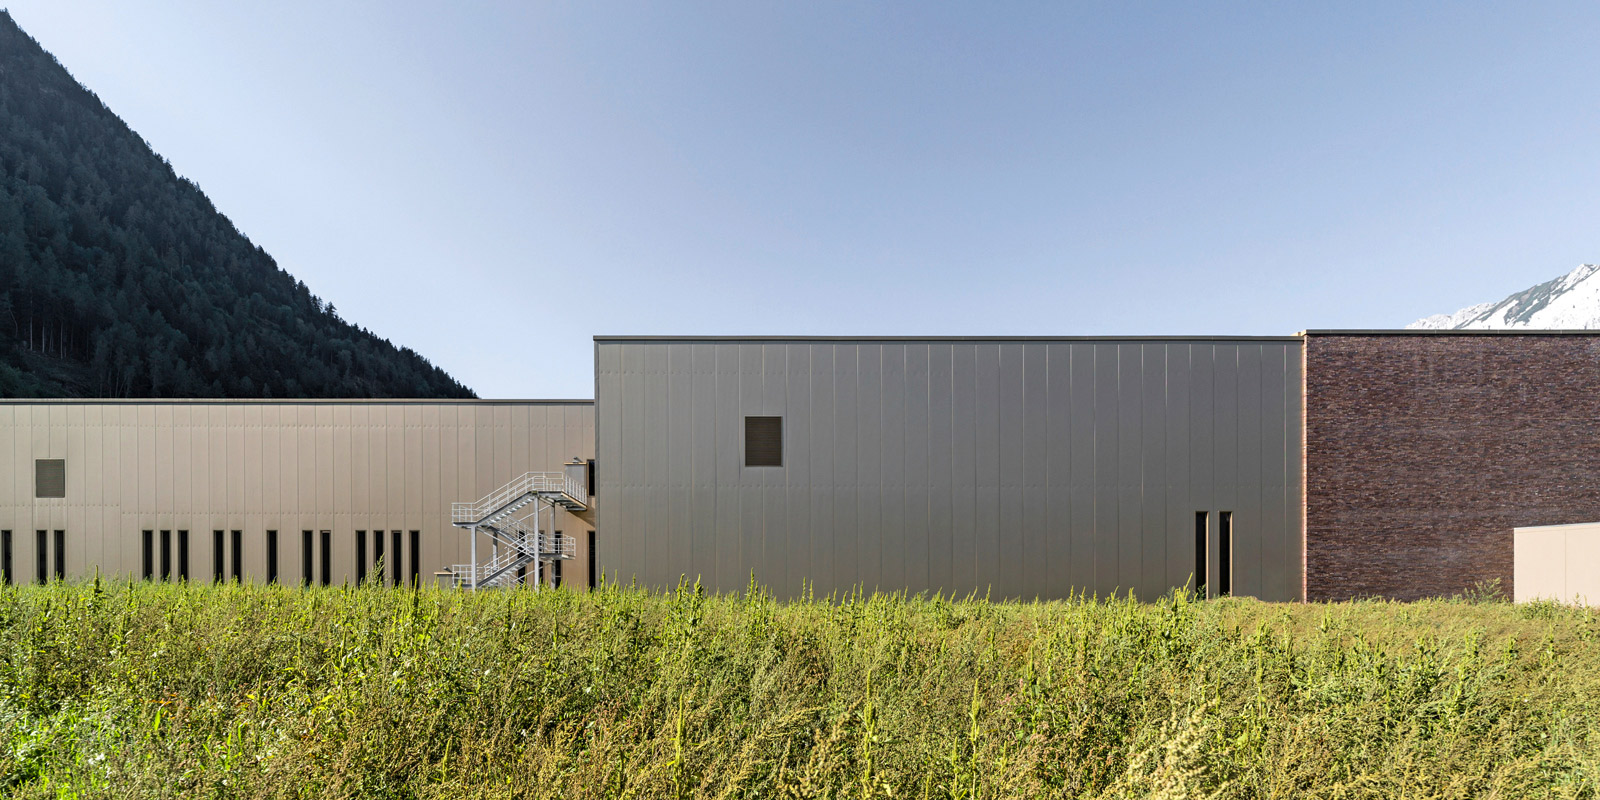 The production building has a modern, technological appearance. Photo: ATP/Bause